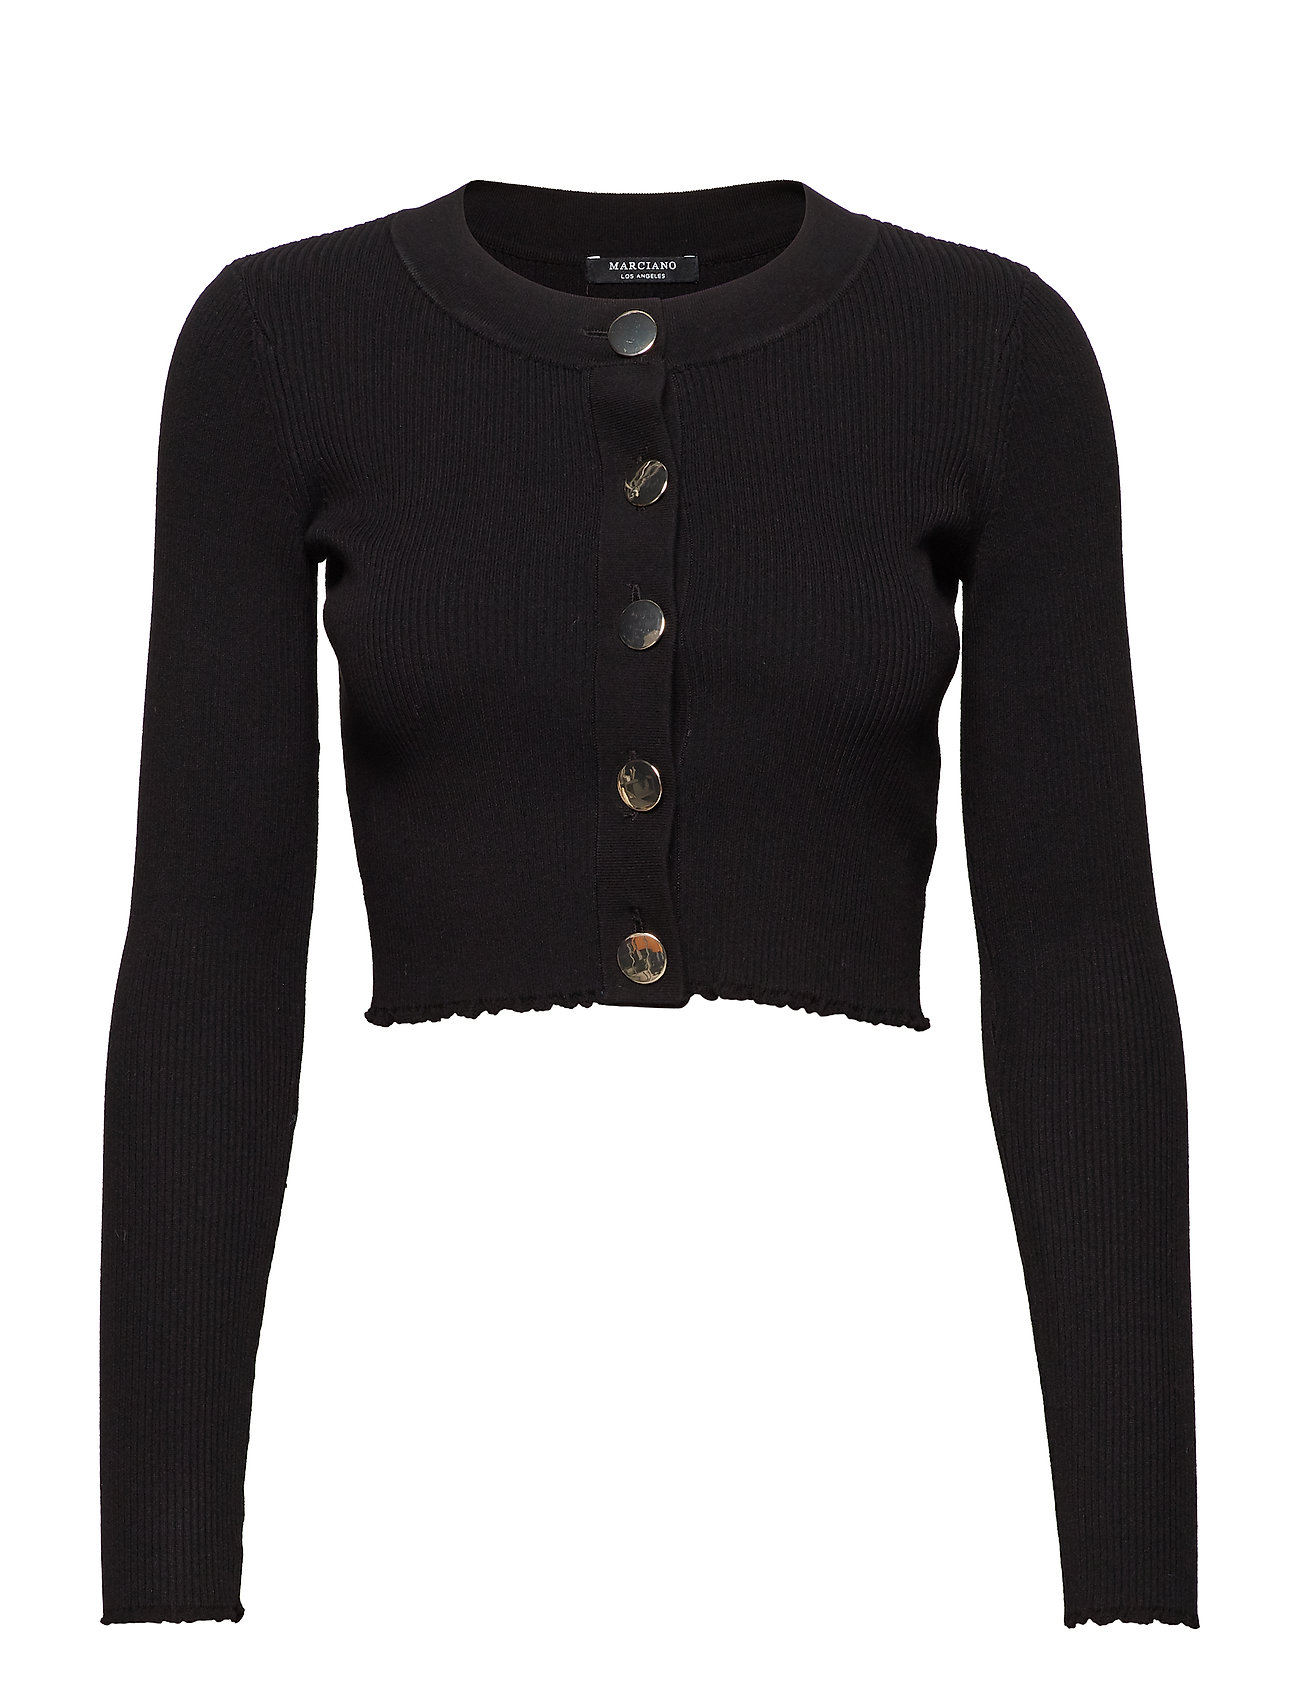 Kyra A996Marciano Sweater Black Cardignjet By Guess Rib 8kn0wPO